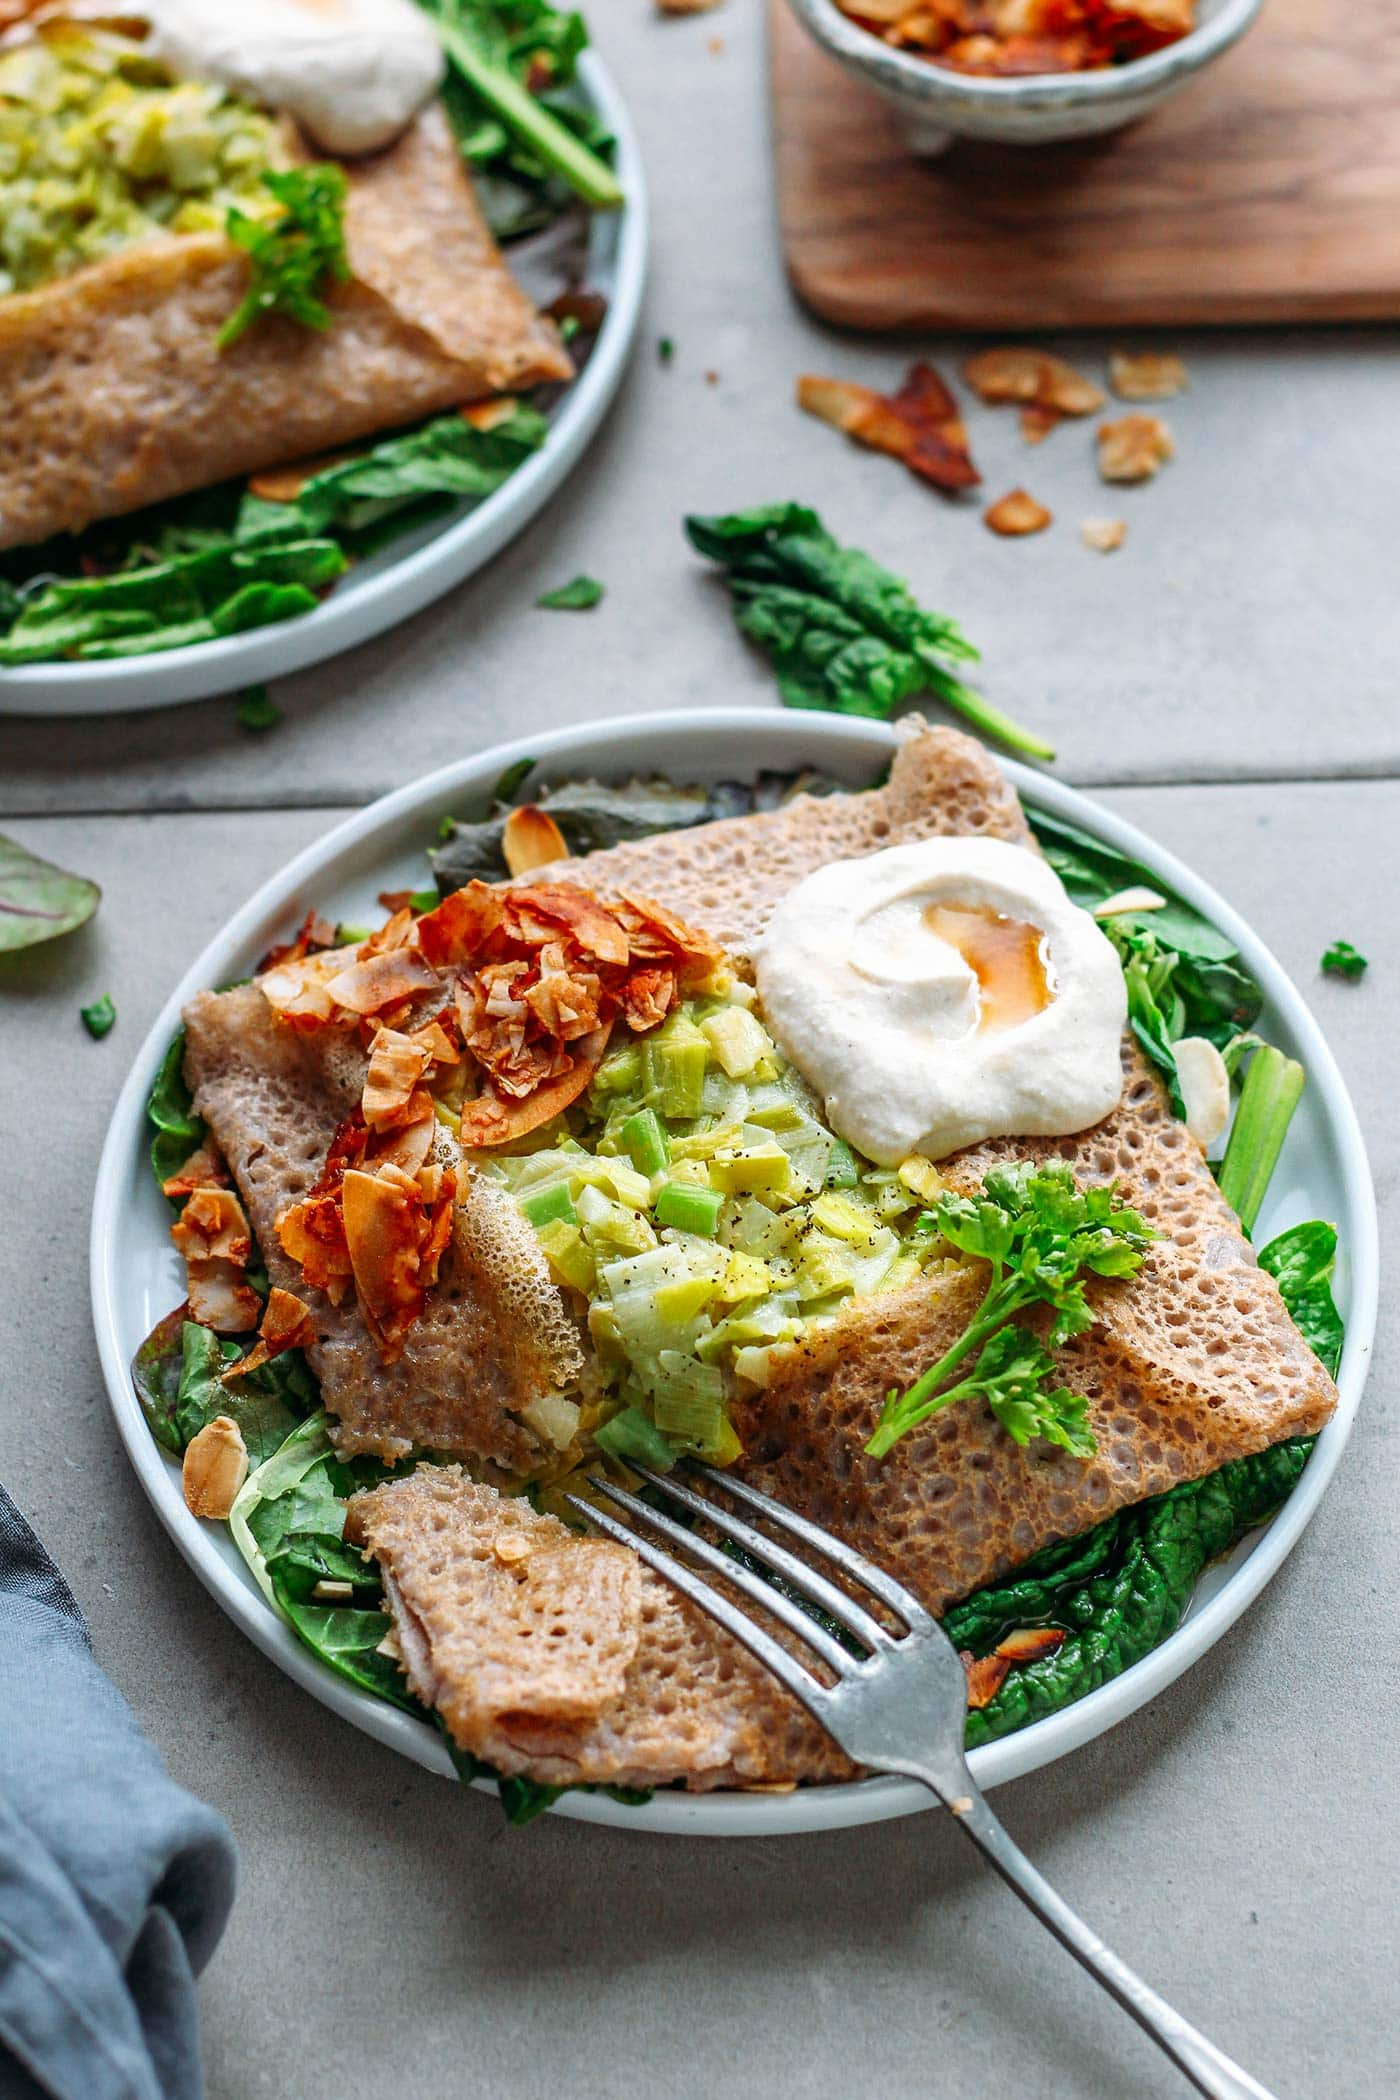 Savory Buckwheat Crepes with Leek Fondue & Coconut Bacon